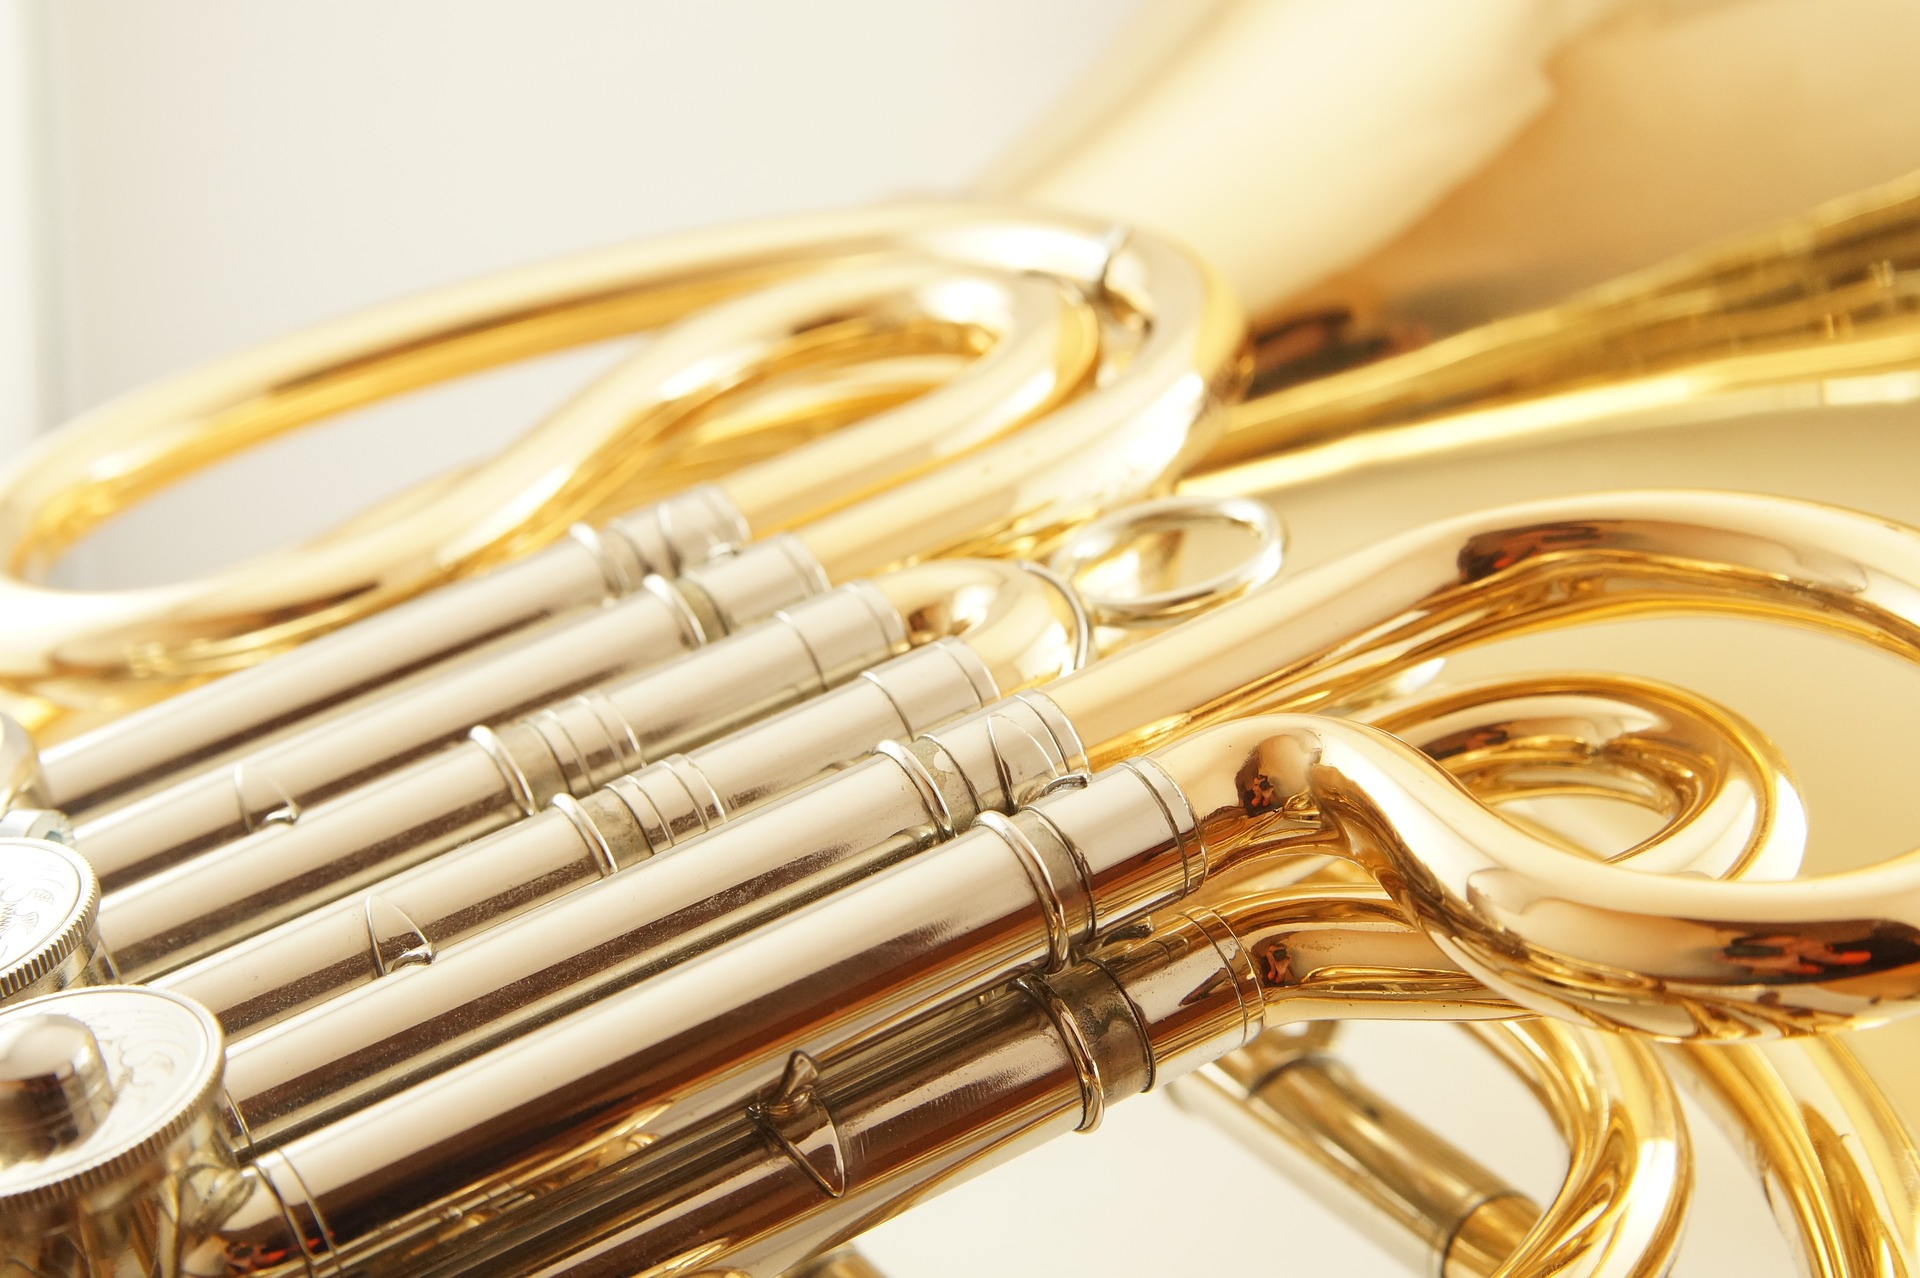 french-horn-1566587_1920